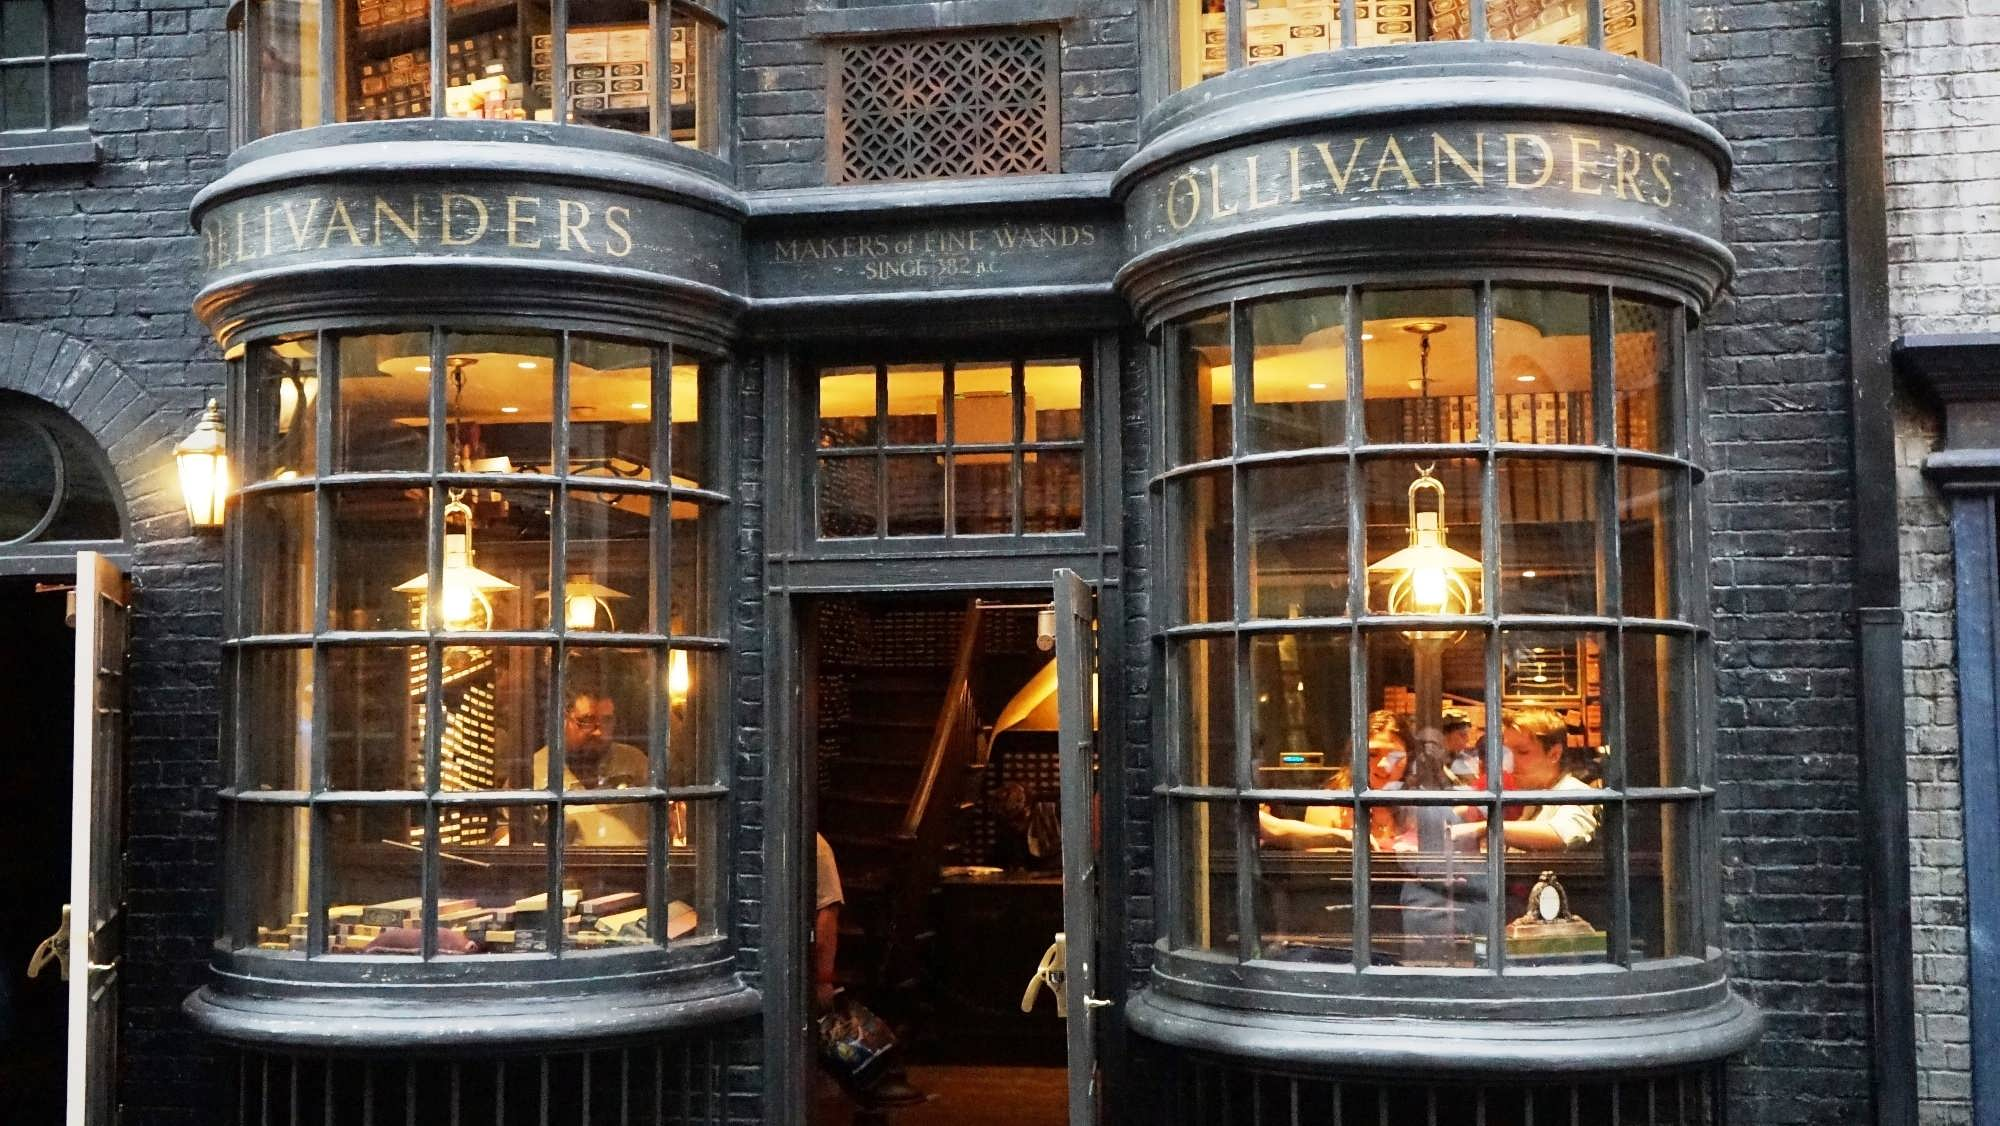 Ollivander's wand shop storefront in Diagon Alley